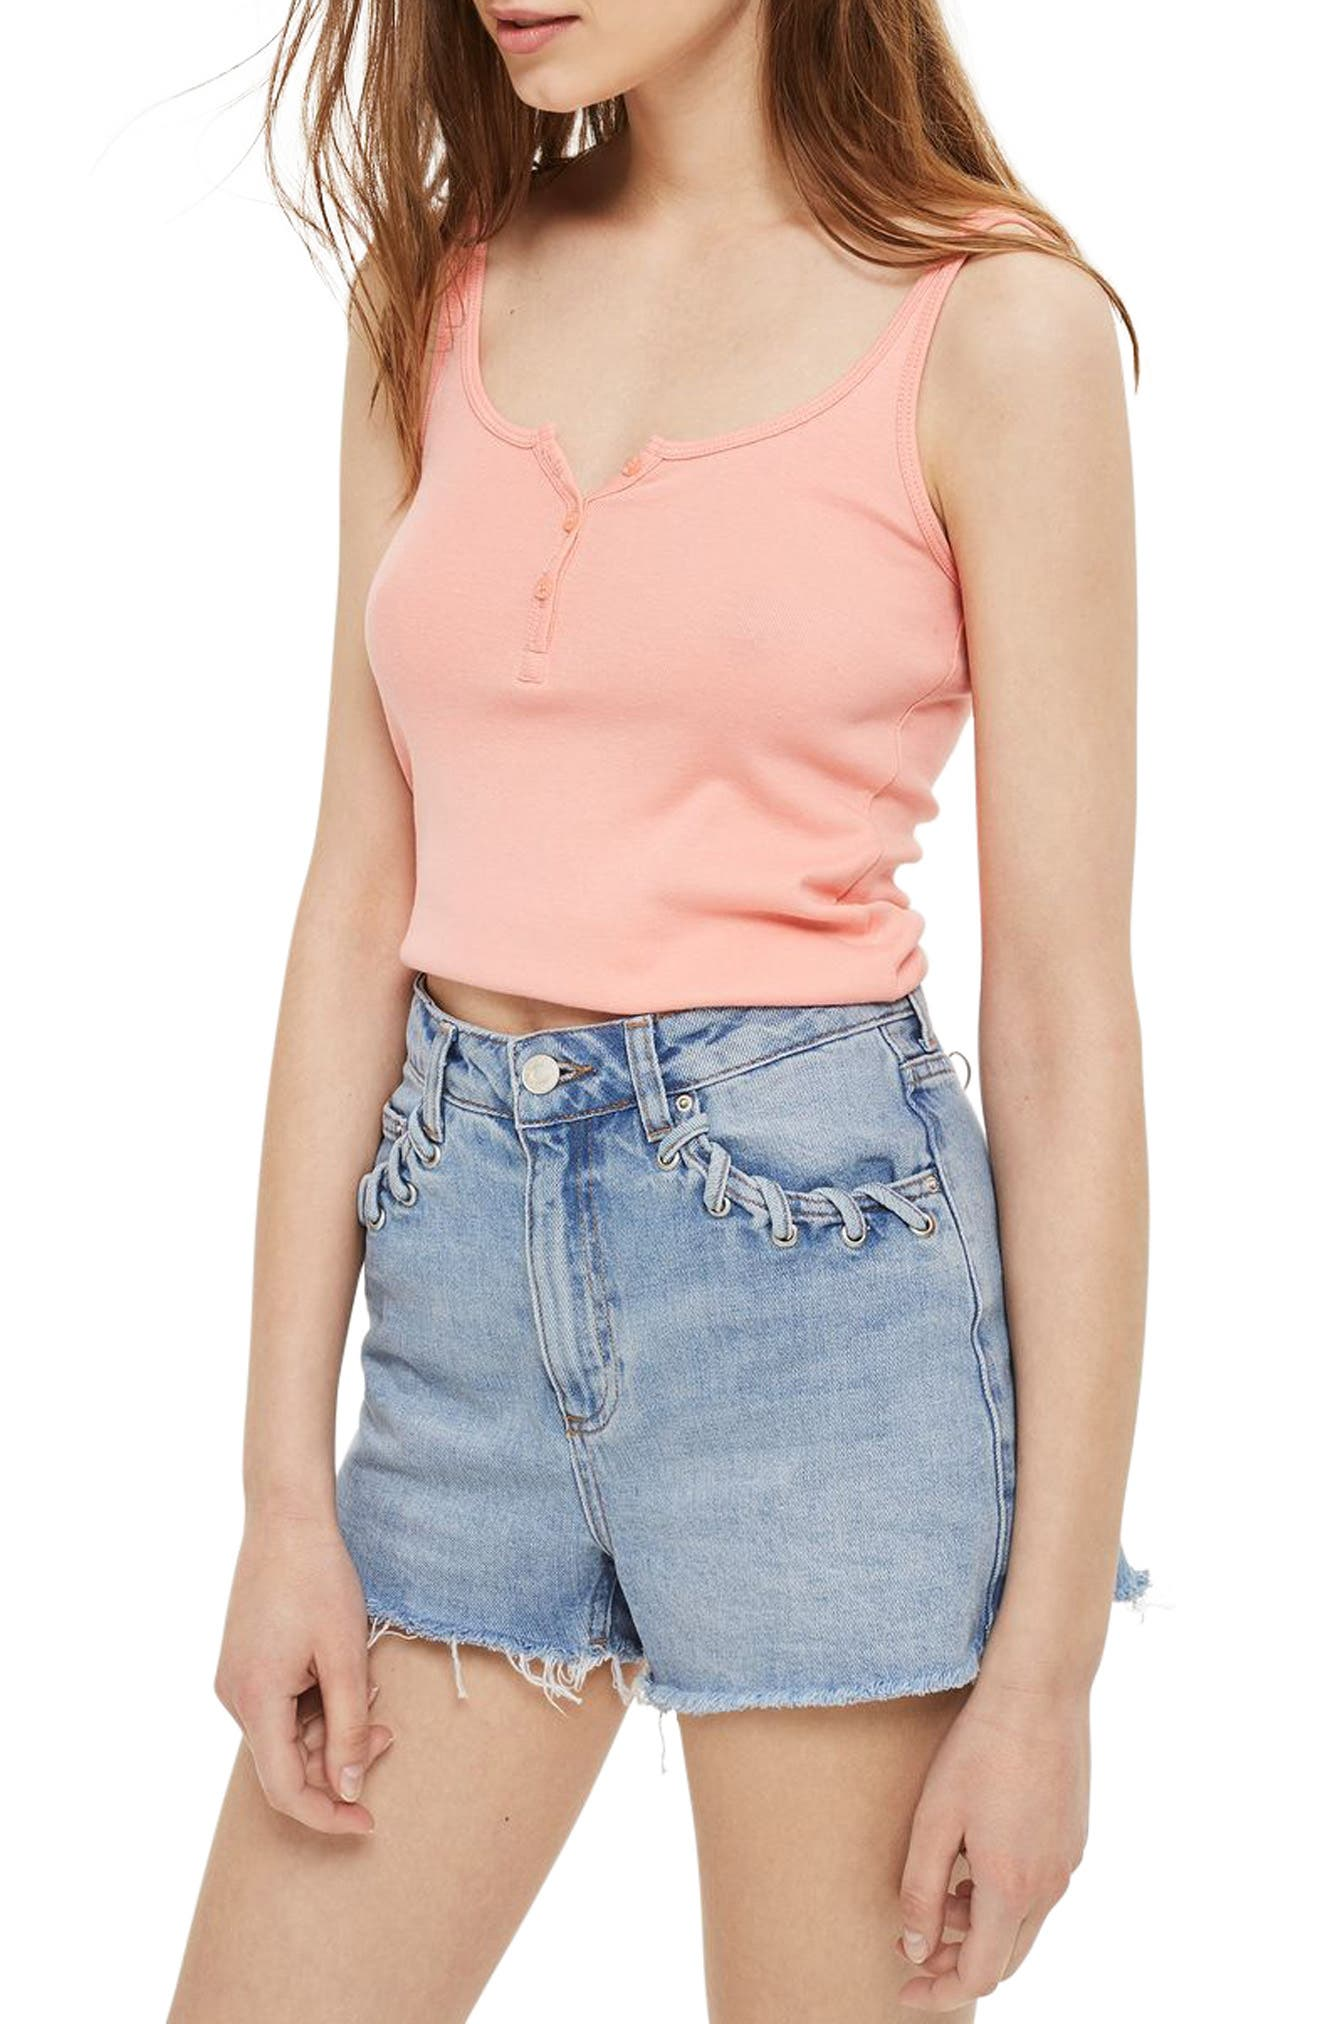 Topshop Henley Tank (2 for $18)